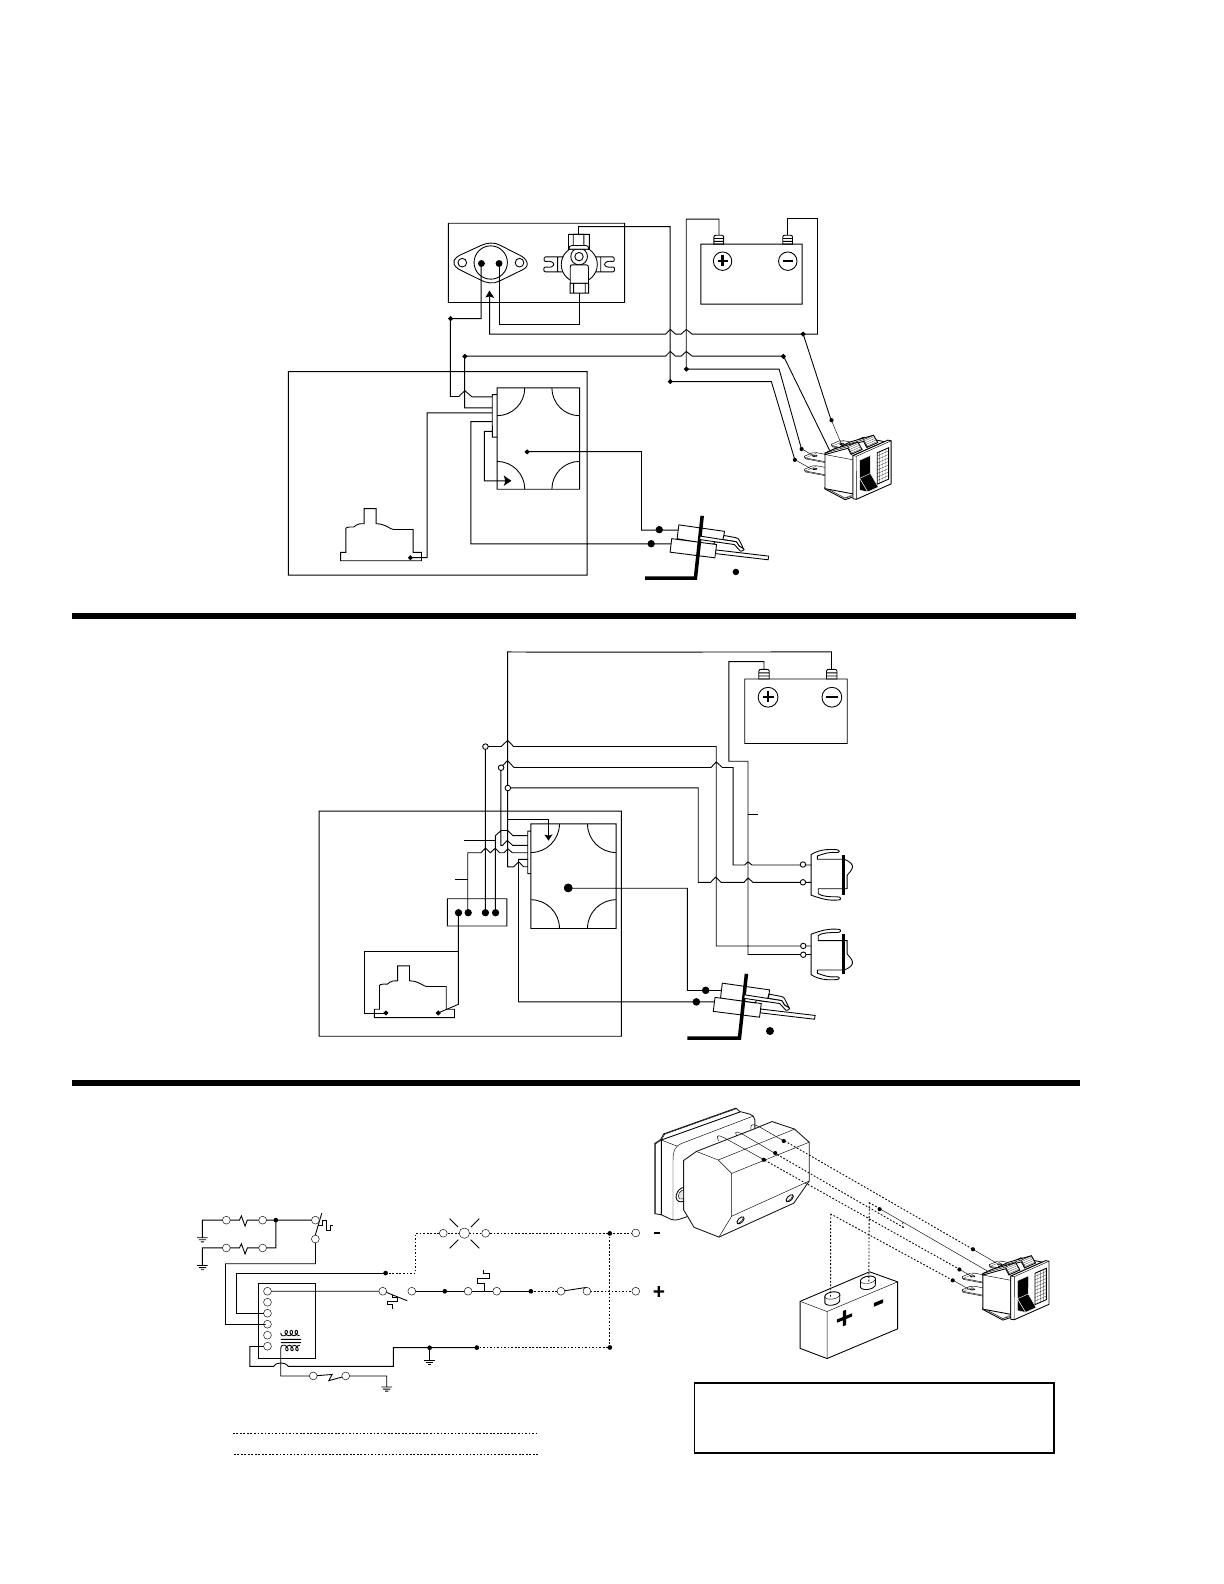 3f2cace3 81e7 4fb0 8be7 b51f580cf60a bg18 page 24 of atwood mobile products water heater 94605 user guide Atwood Water Heater Service Manual at couponss.co